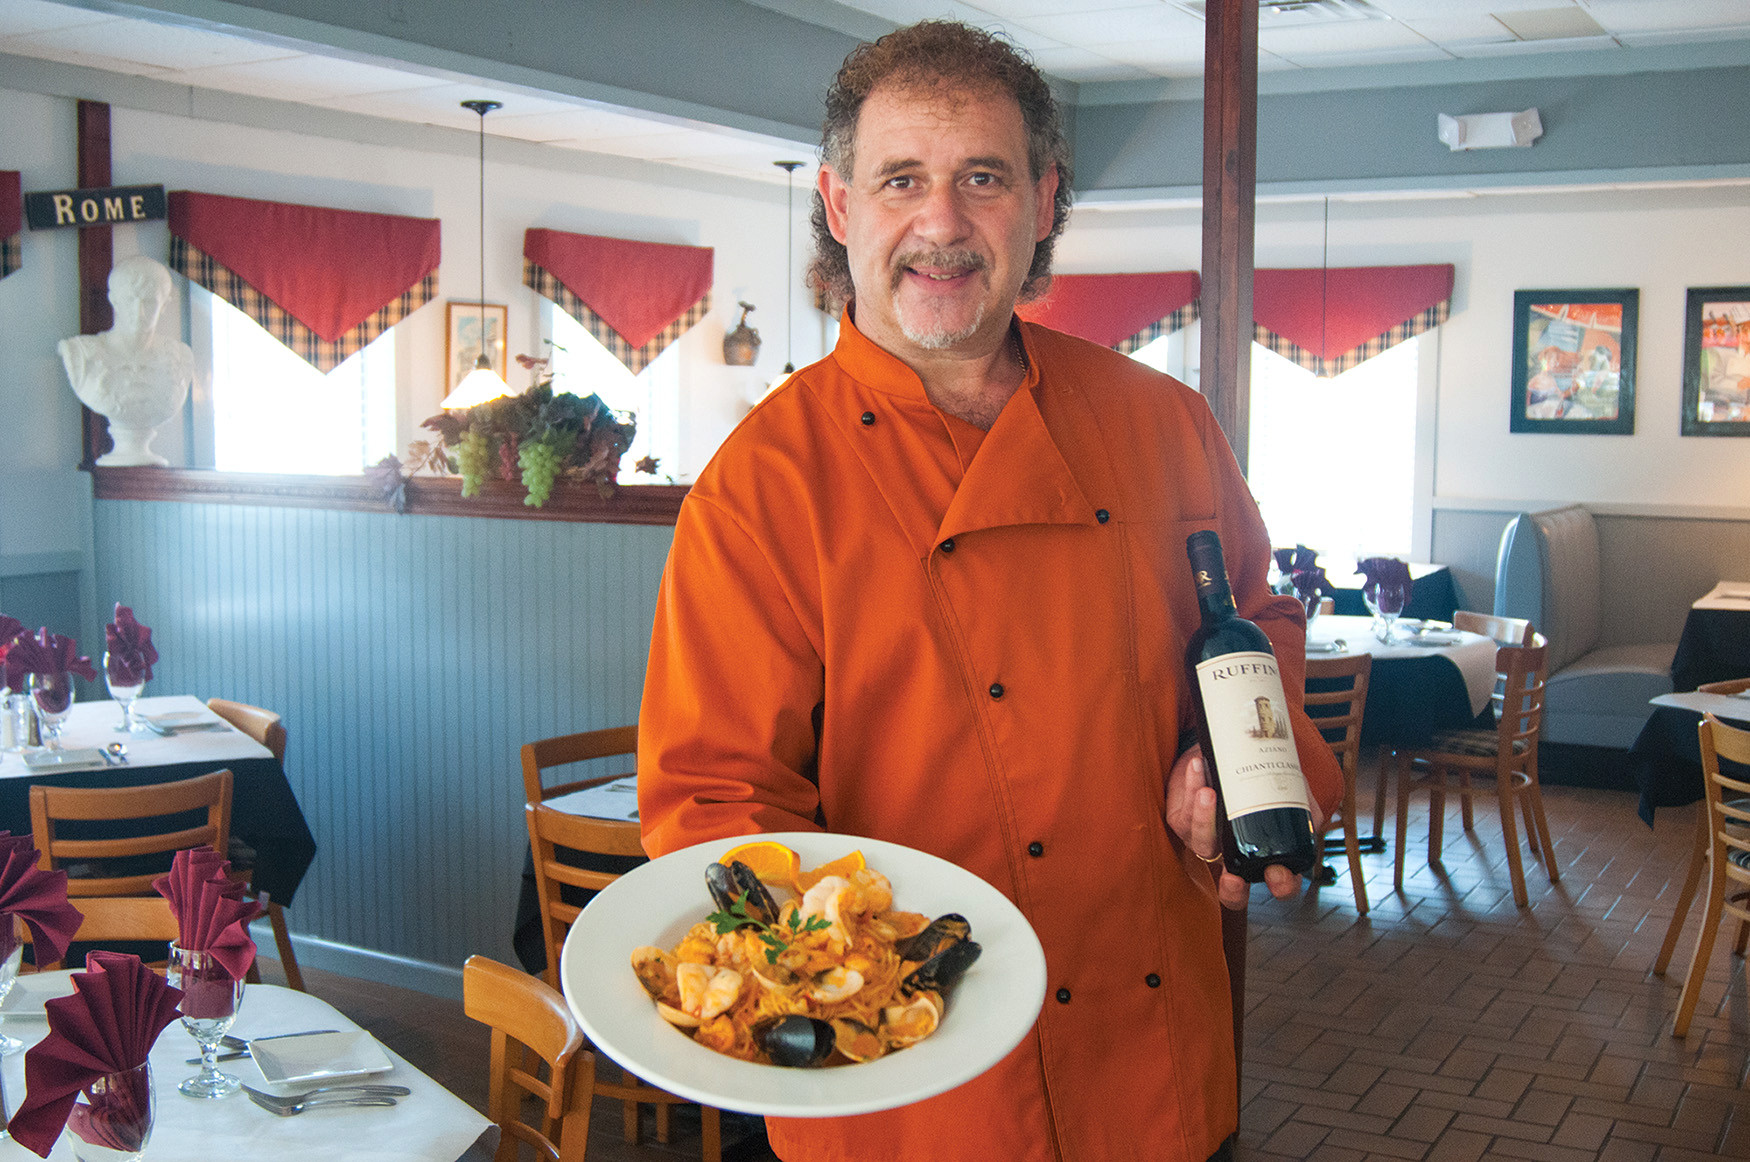 Executive Chef and Owner Tonino Di Bella of Mangia Italian Bistro & Bar on St. Johns Bluff Road South holds a plate of spaghetti amalfi with chopped fish, clams, mussels and shrimp over pasta in a creamy marinara sauce.